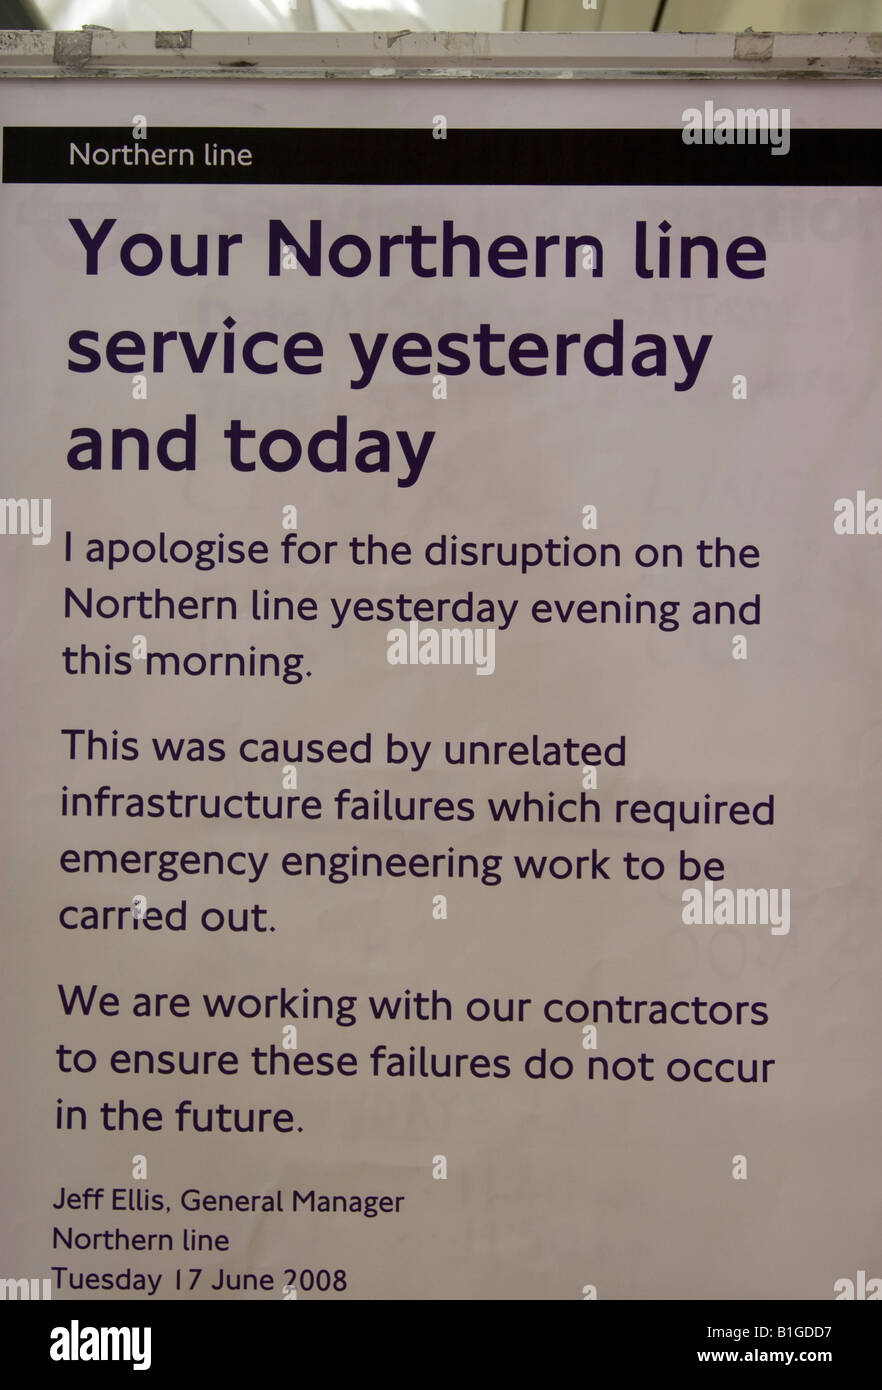 London Underground poster apologising for disruption on Northern Line - London Stock Photo